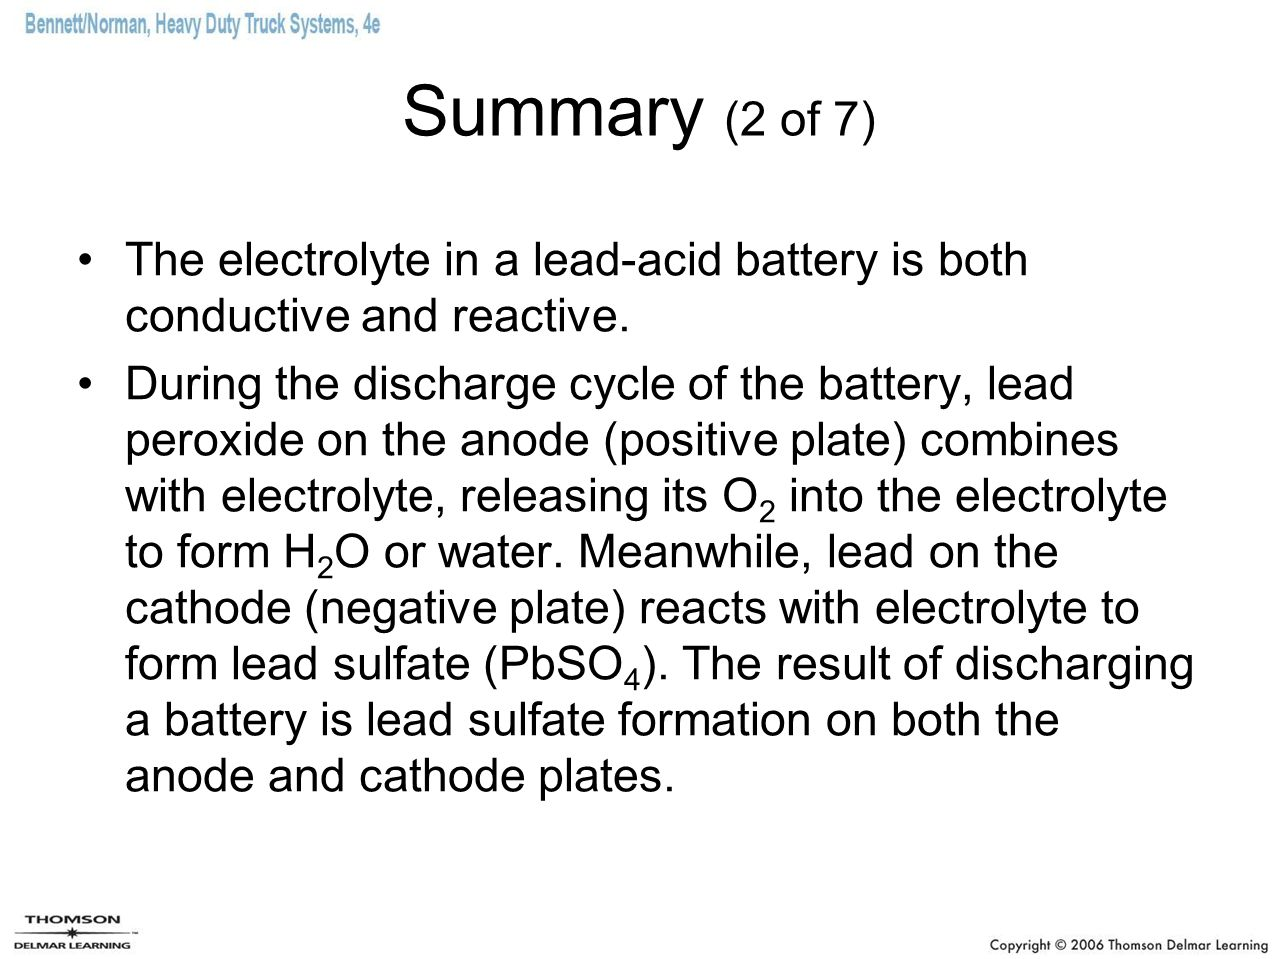 Summary (2 of 7) The electrolyte in a lead-acid battery is both conductive and reactive.